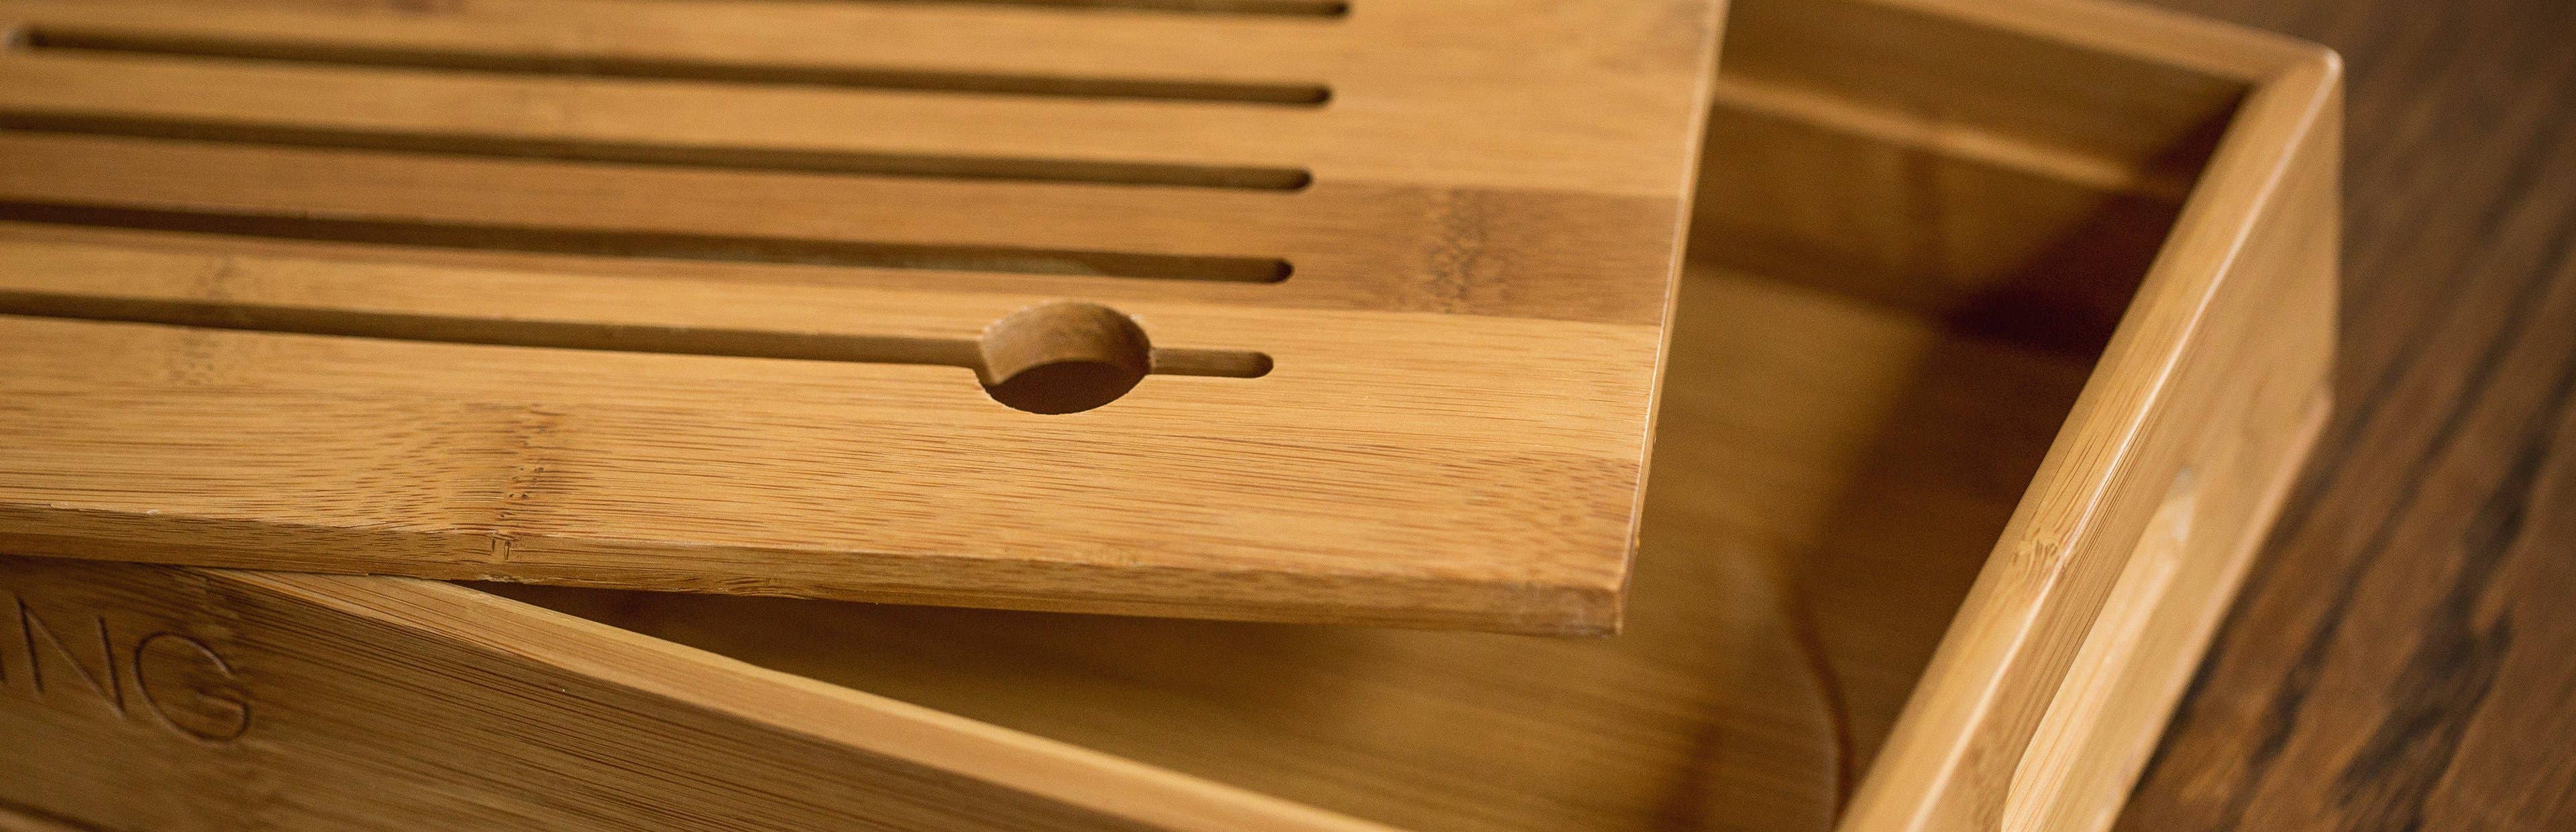 Bamboo Water Tray